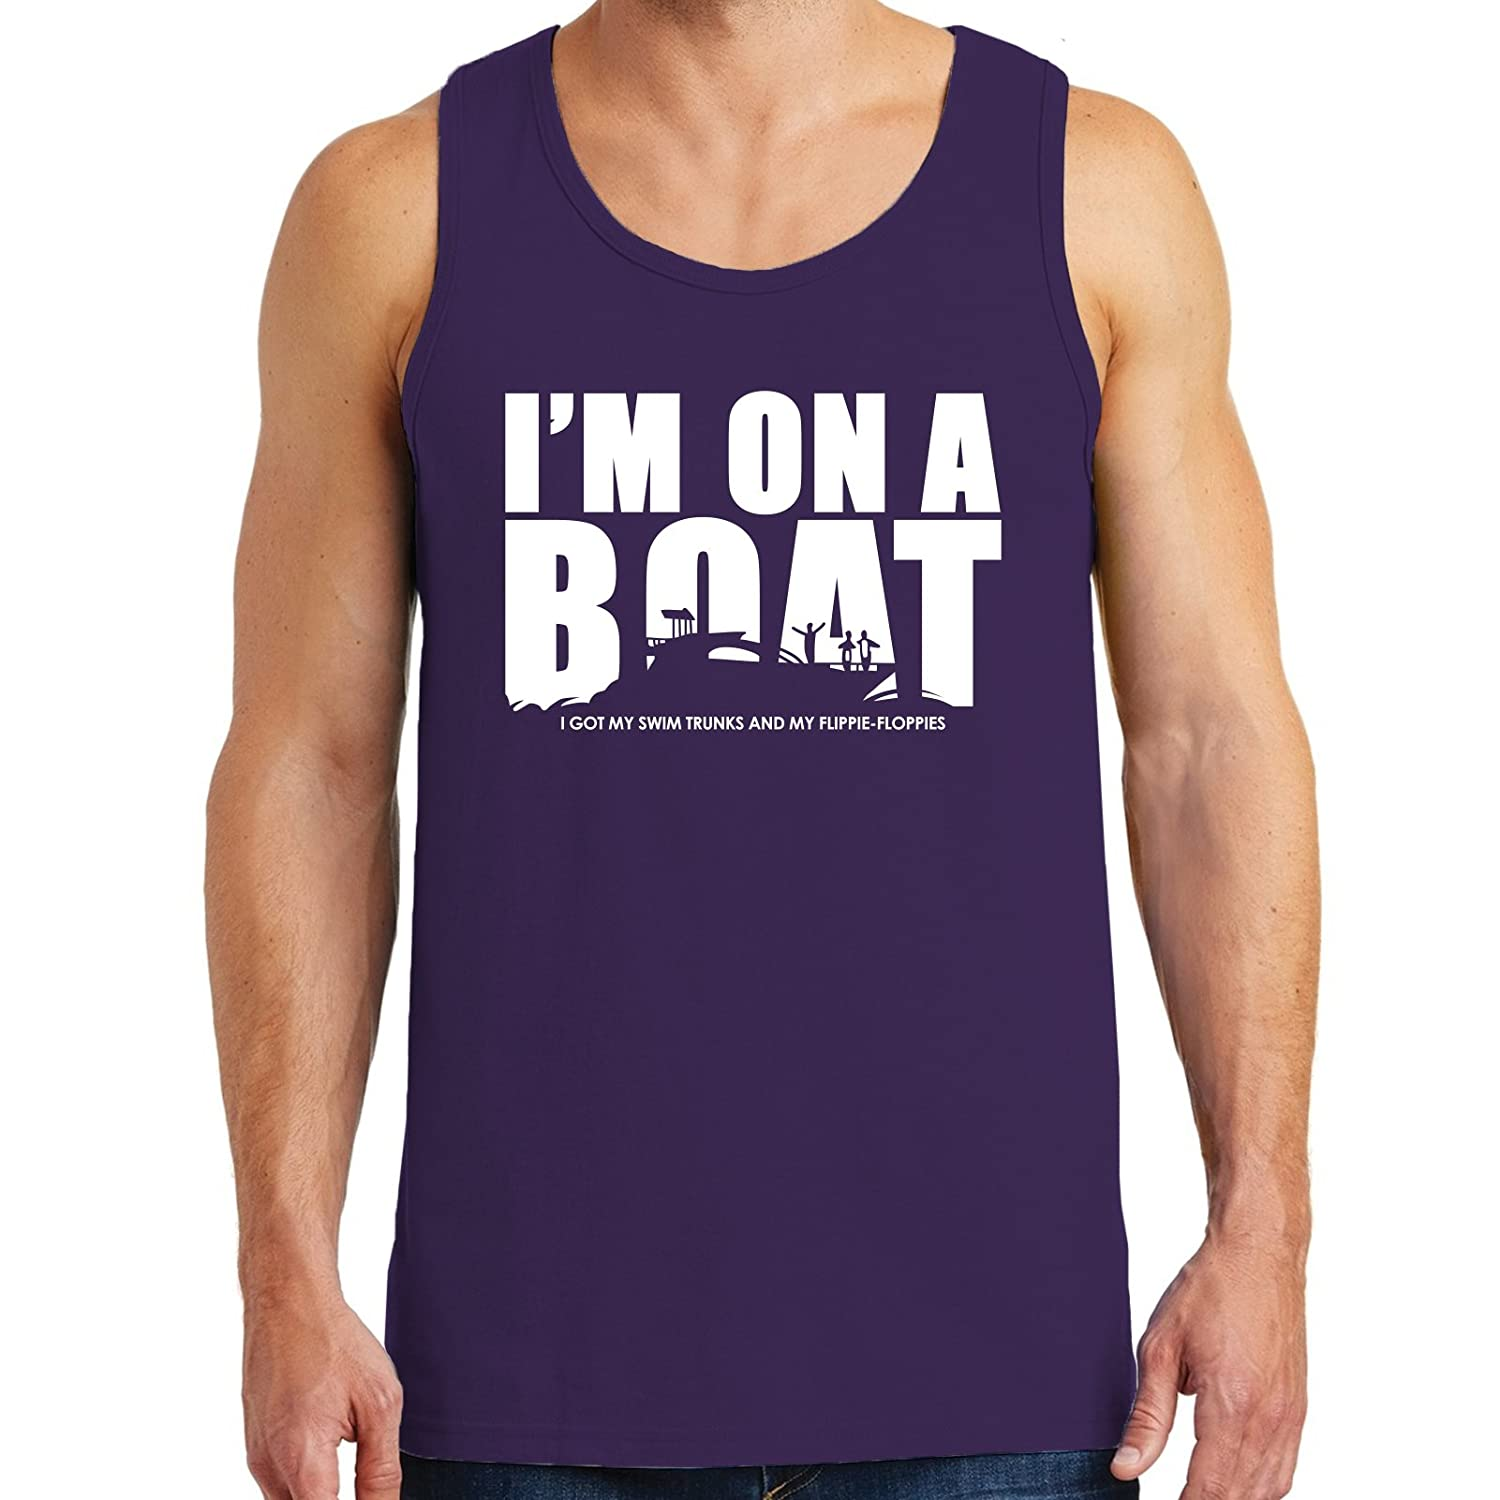 UGP Campus Apparel Im On A Boat River Fishing Funny Adult Cotton Tank Top Lake Sailing Partying